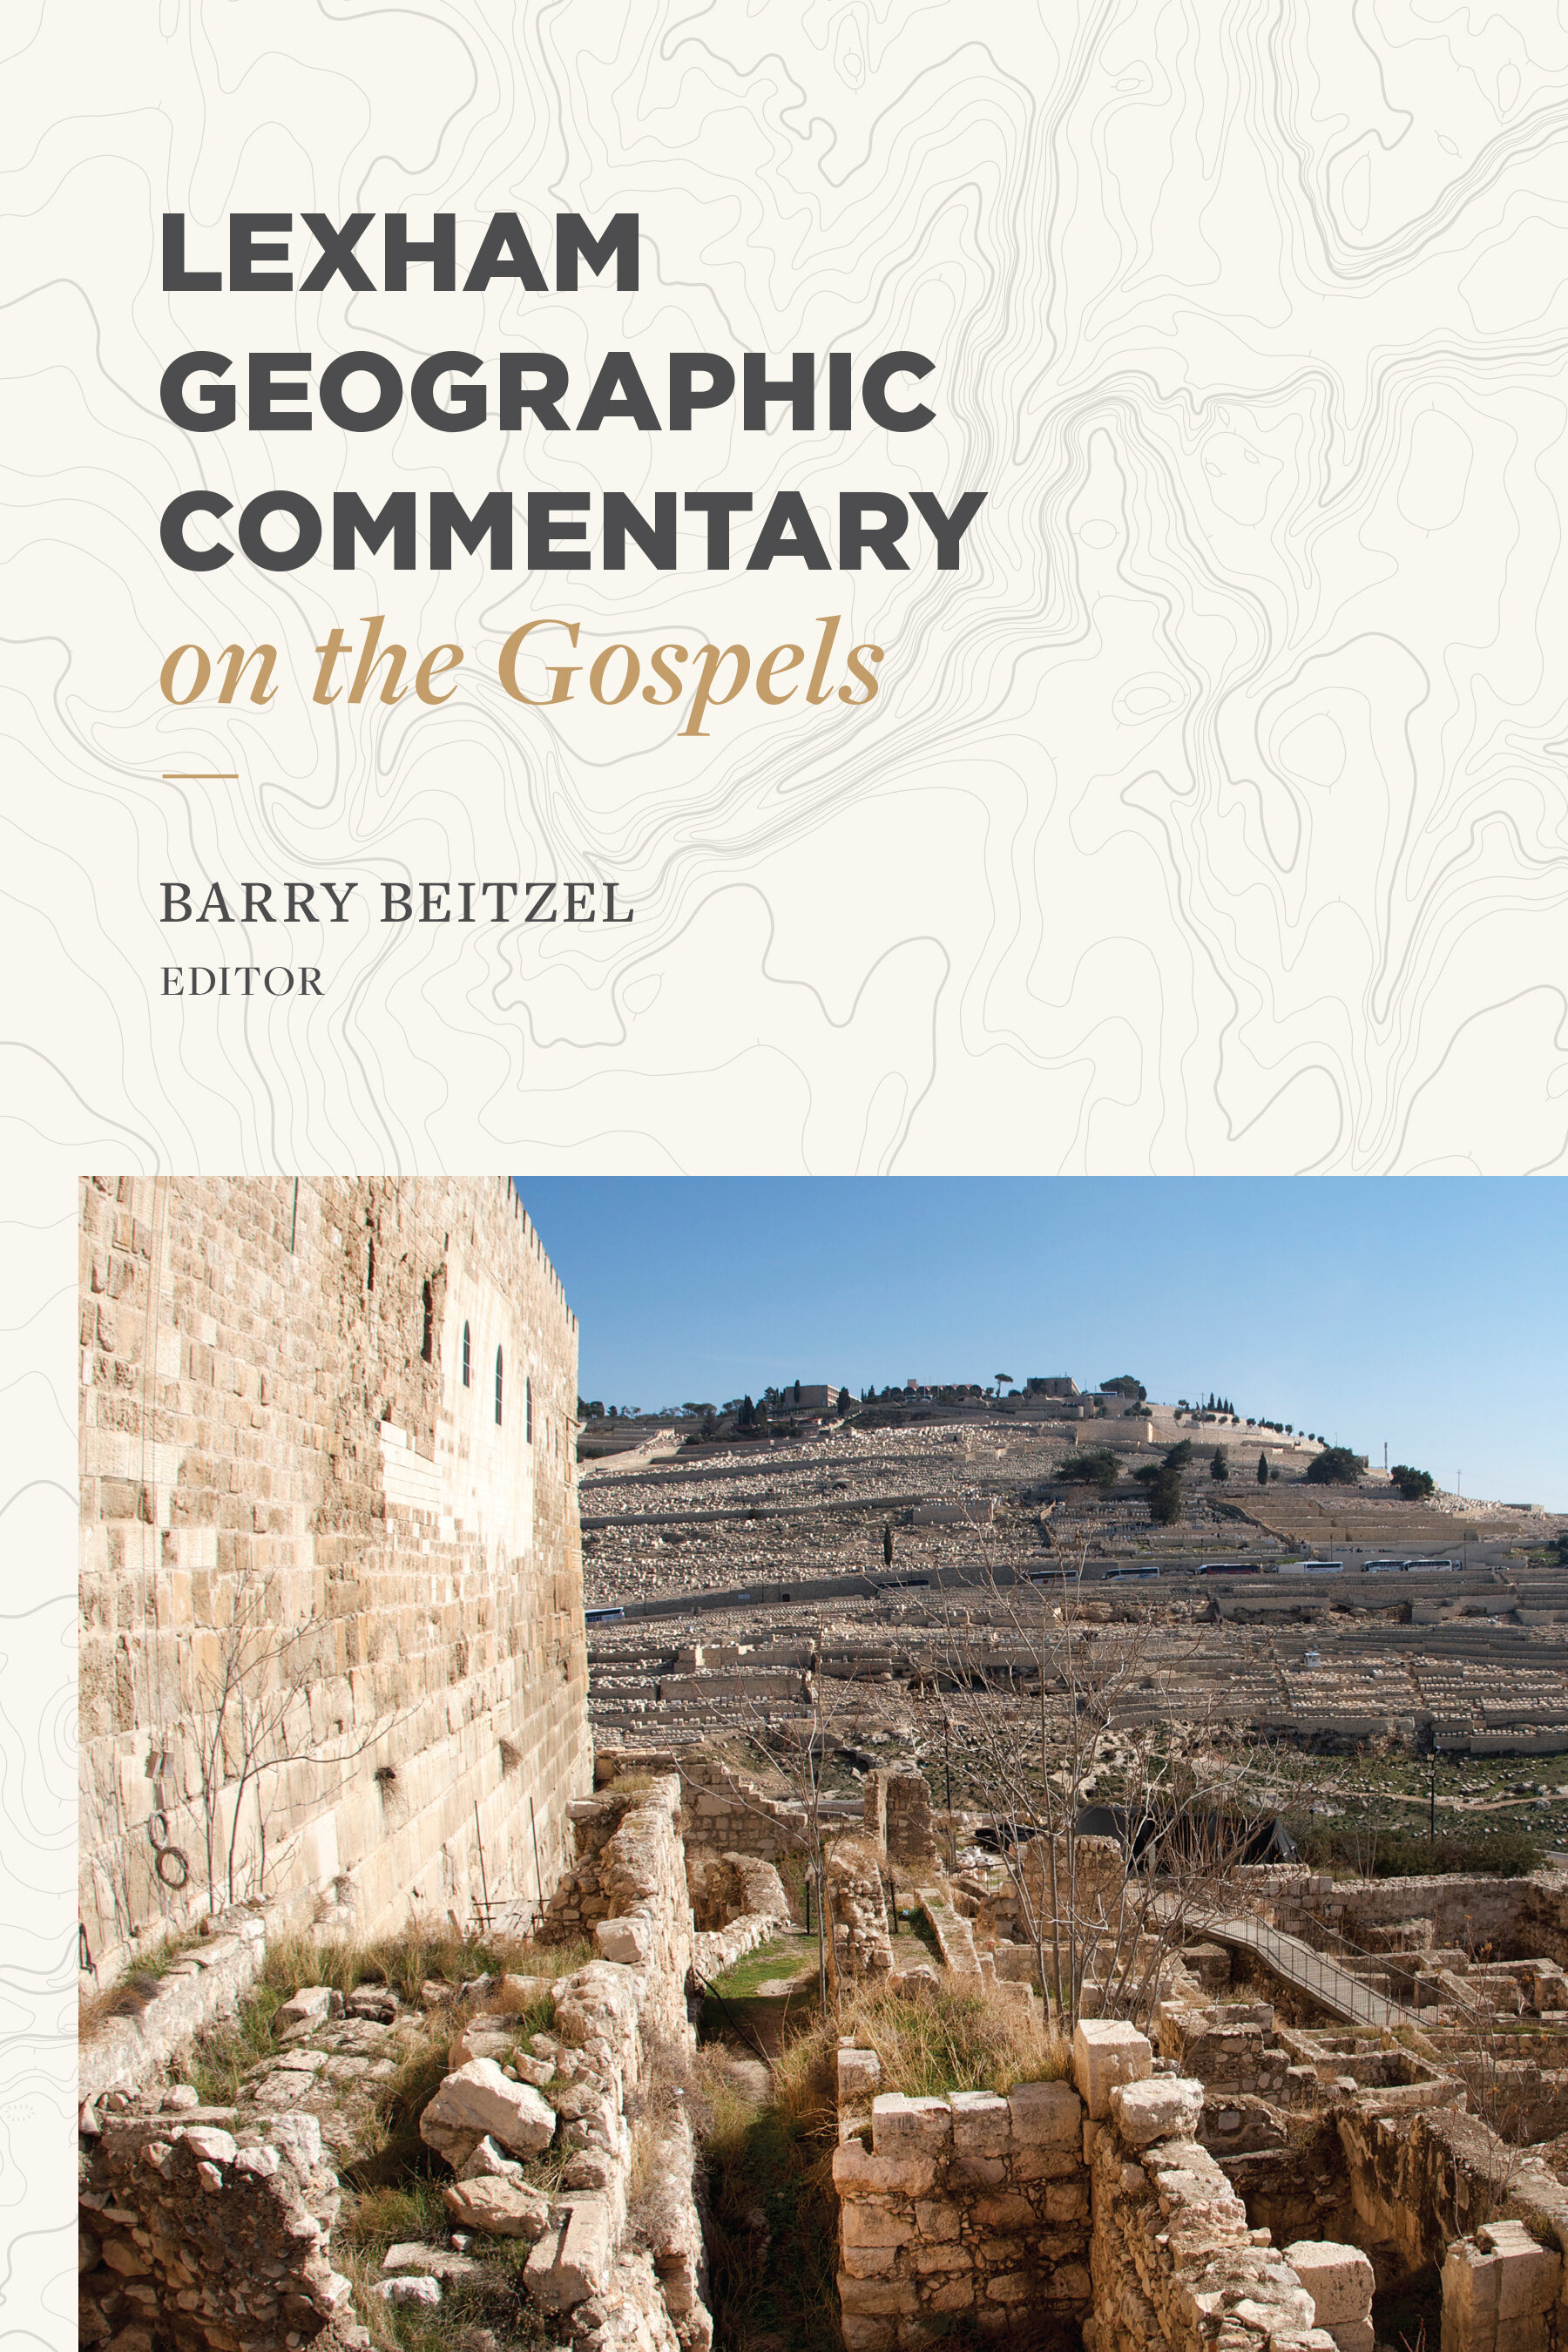 Lexham Geographic Commentary on the Gospels